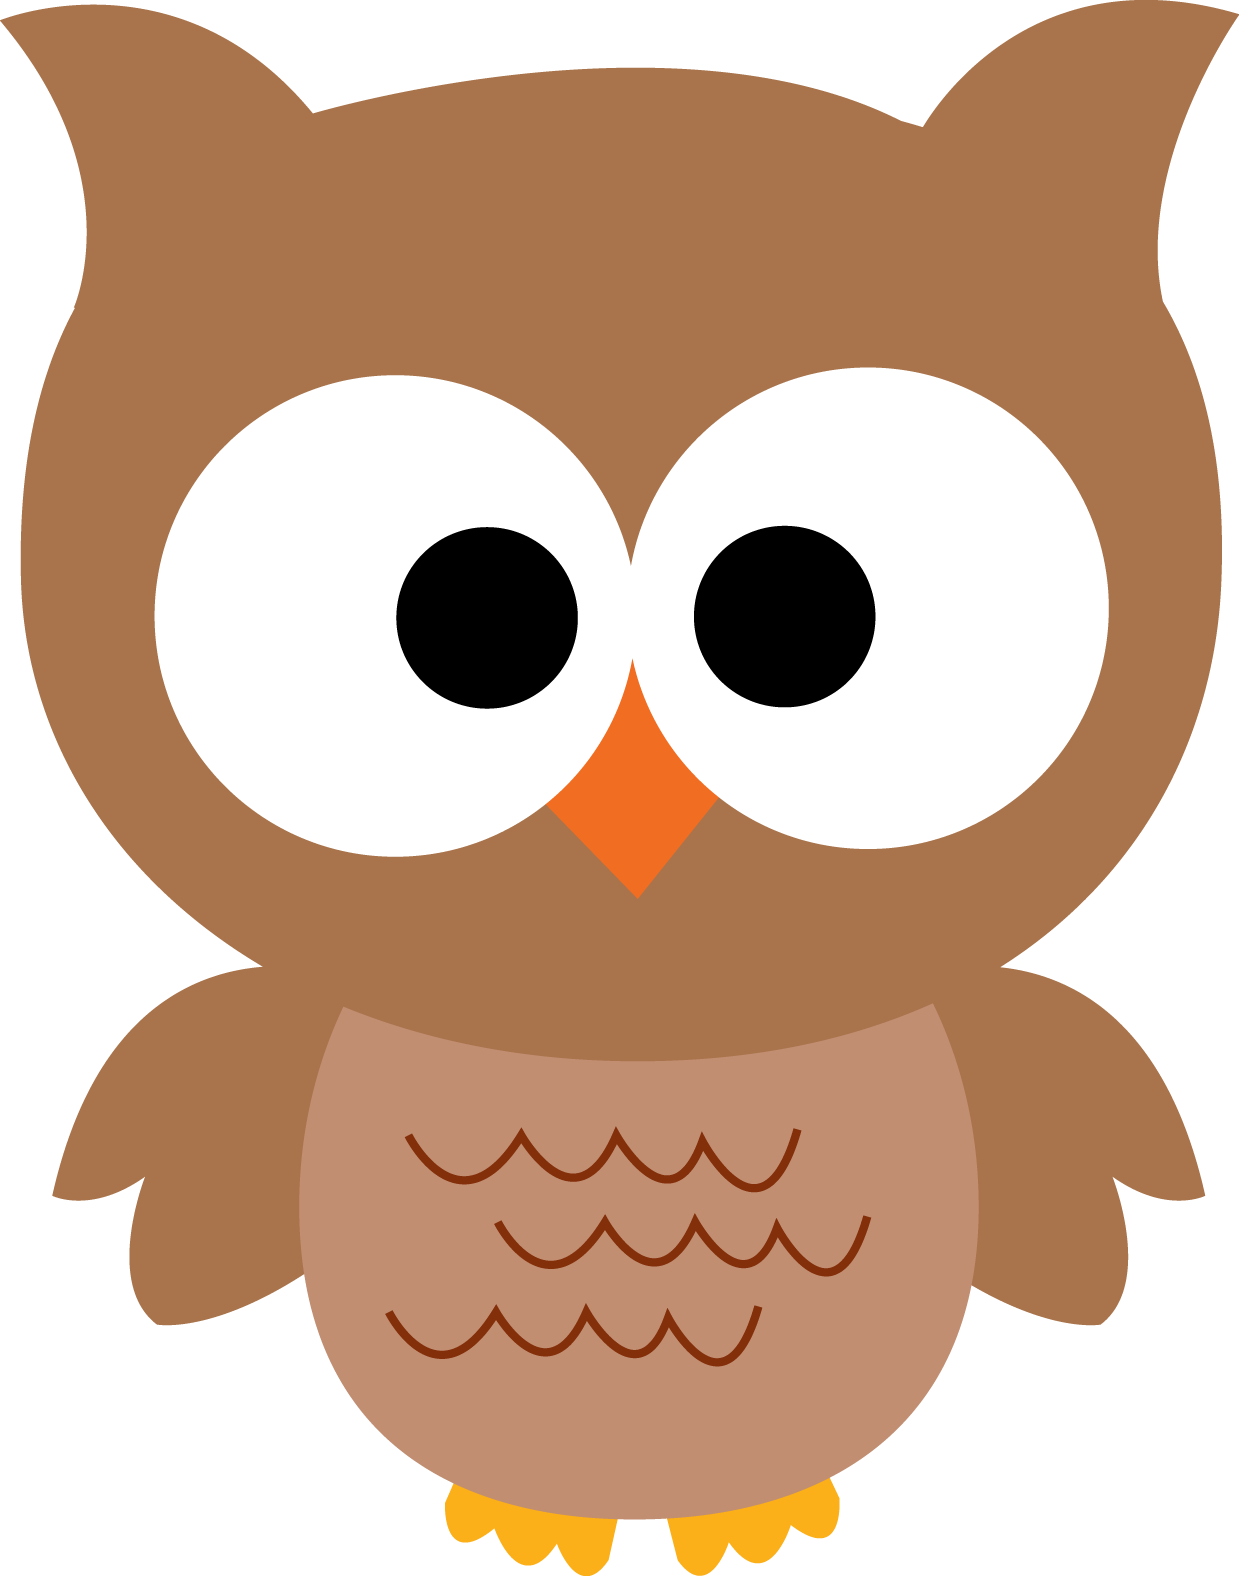 Owlet clipart #6, Download drawings